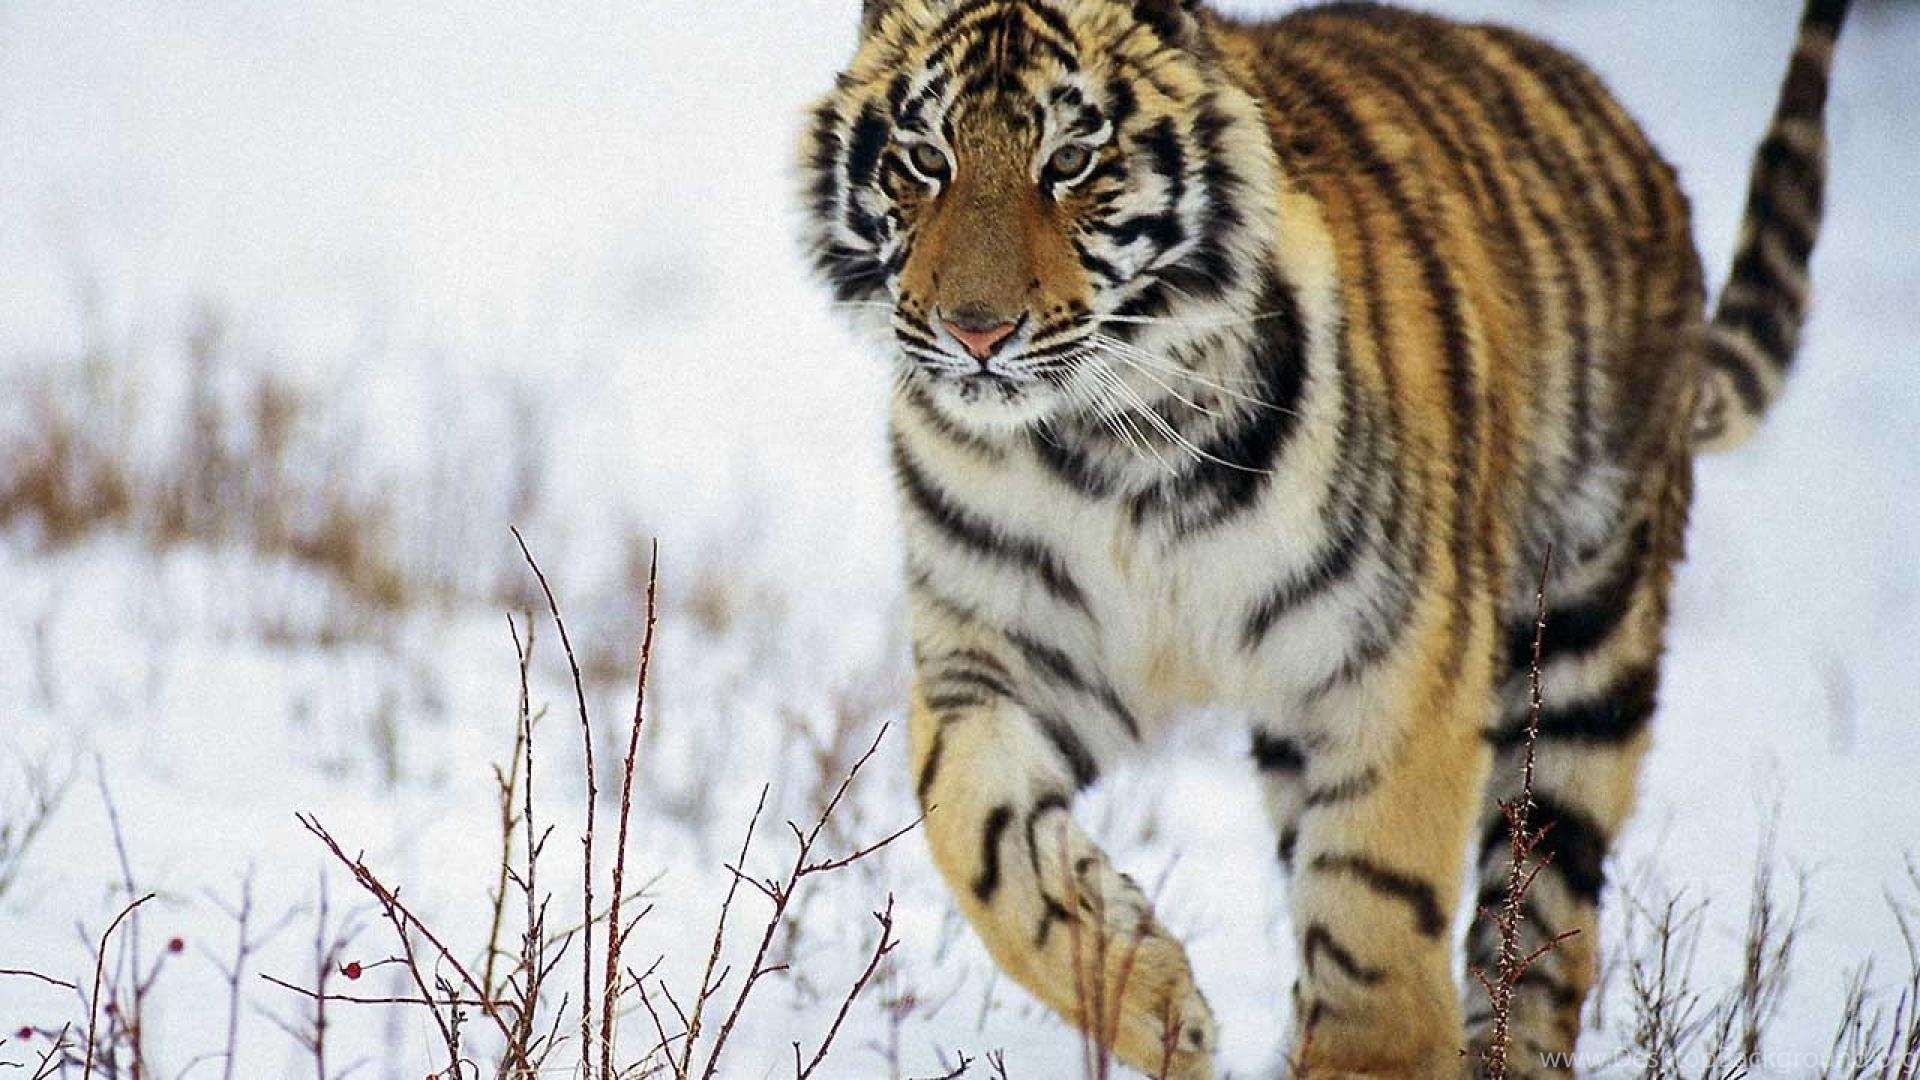 Snow Animals Tigers Animal Tiger HD Wallpapers Wallpapers ...